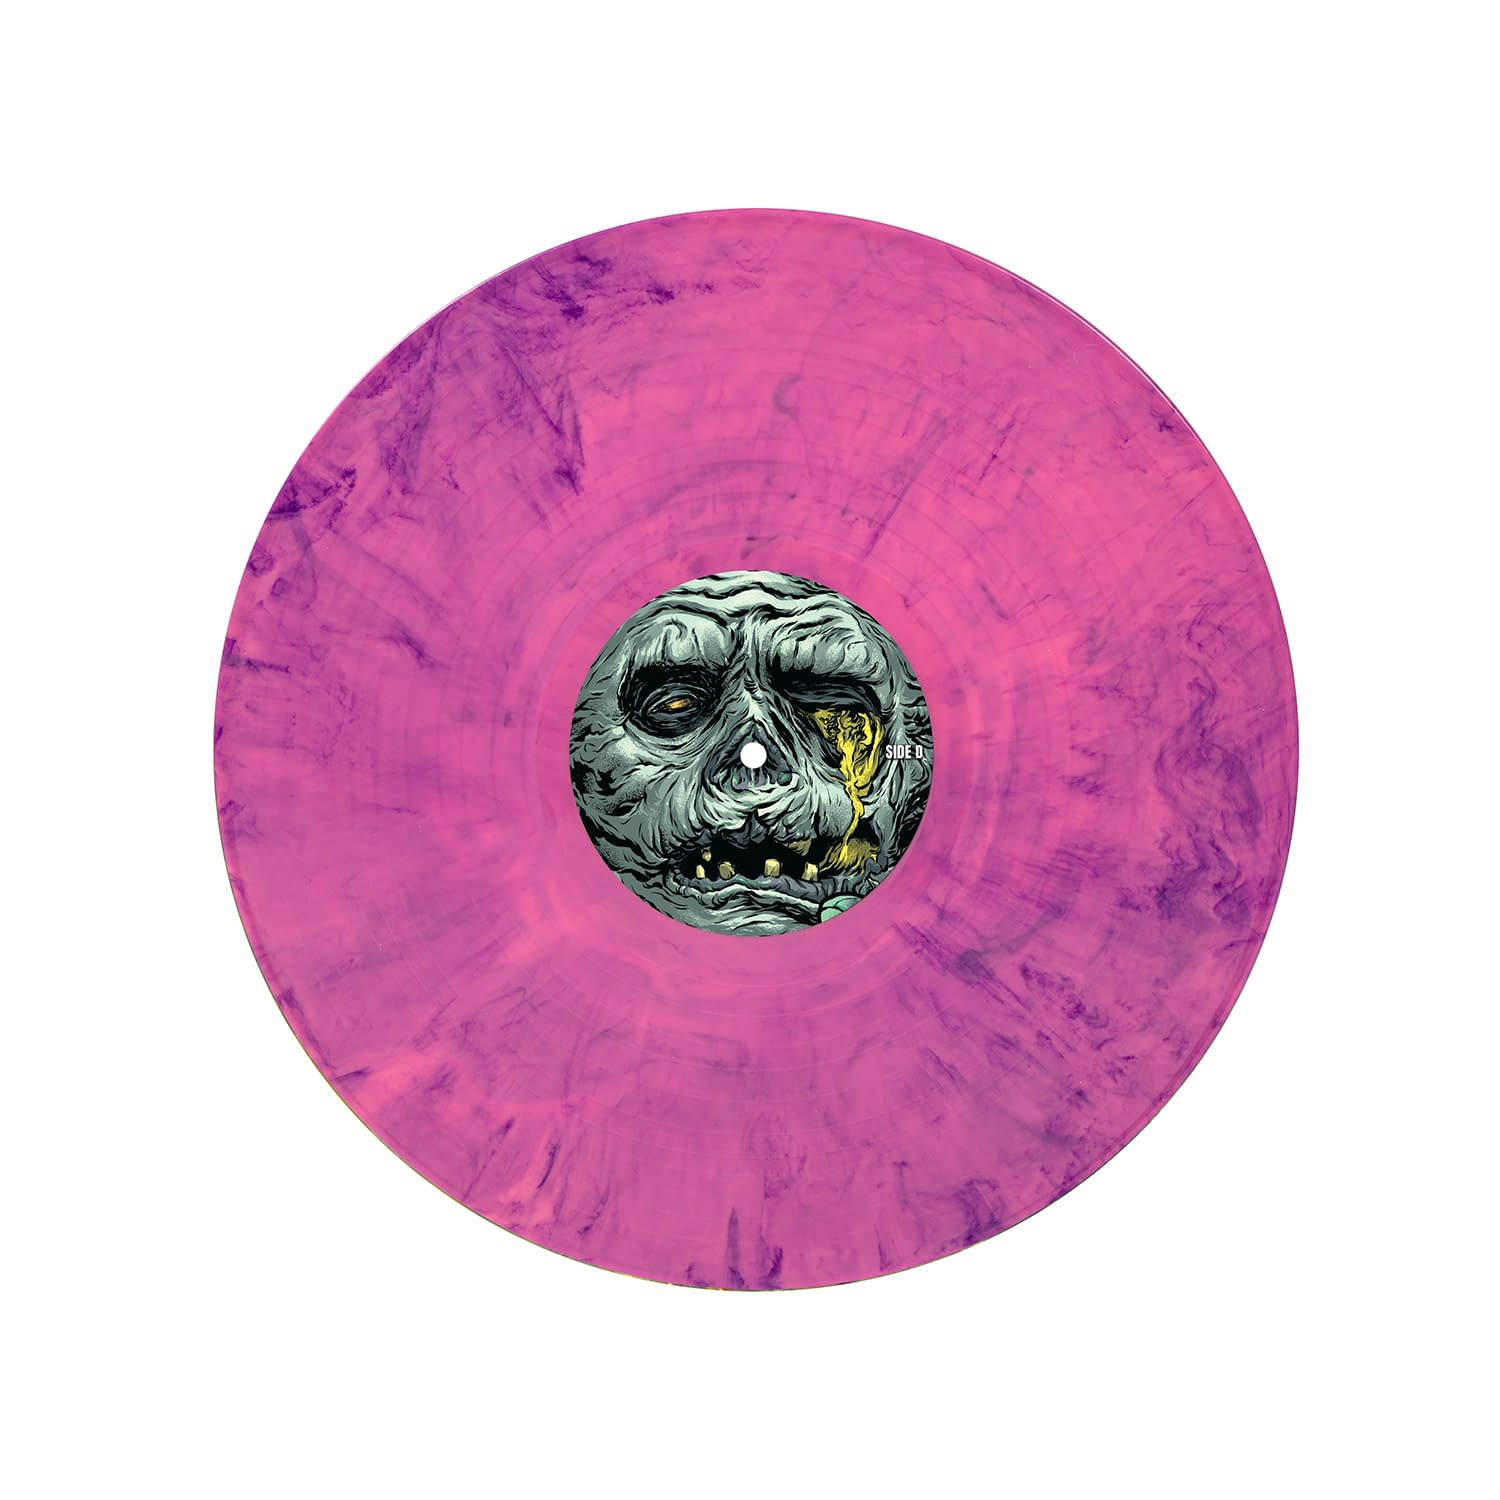 Friday The 13th Part 8 Vinyl Soundtrack Available Now From Waxwork